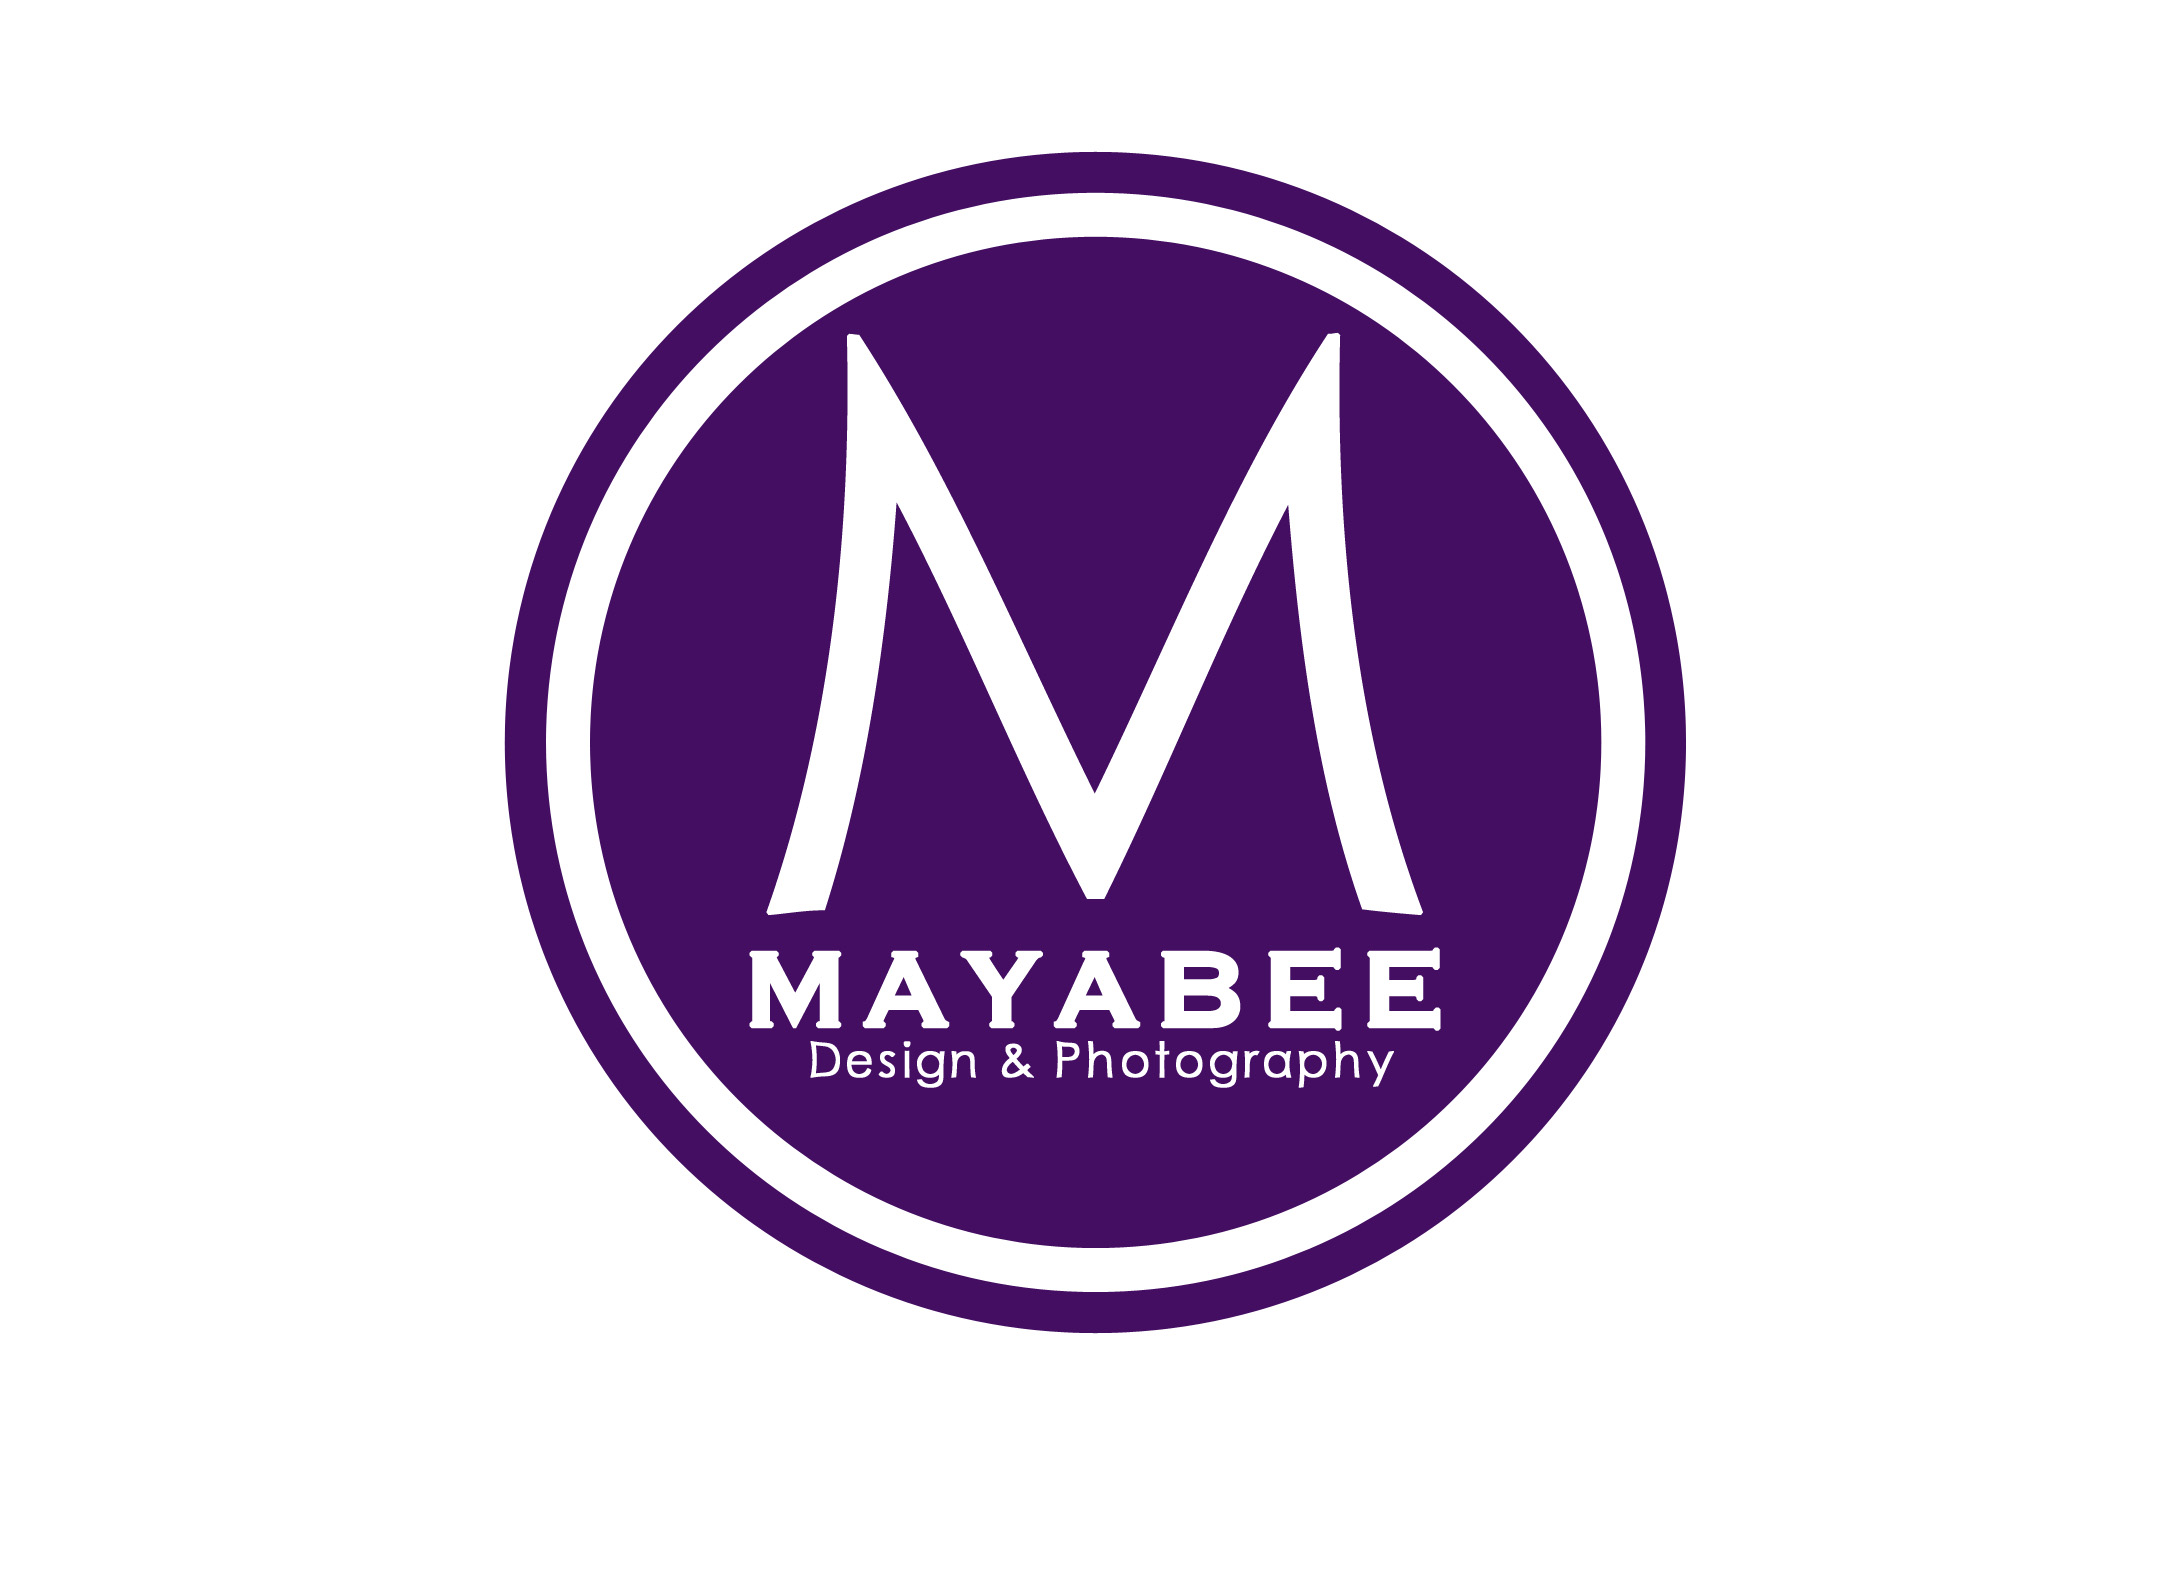 Mayabee Design & Photography